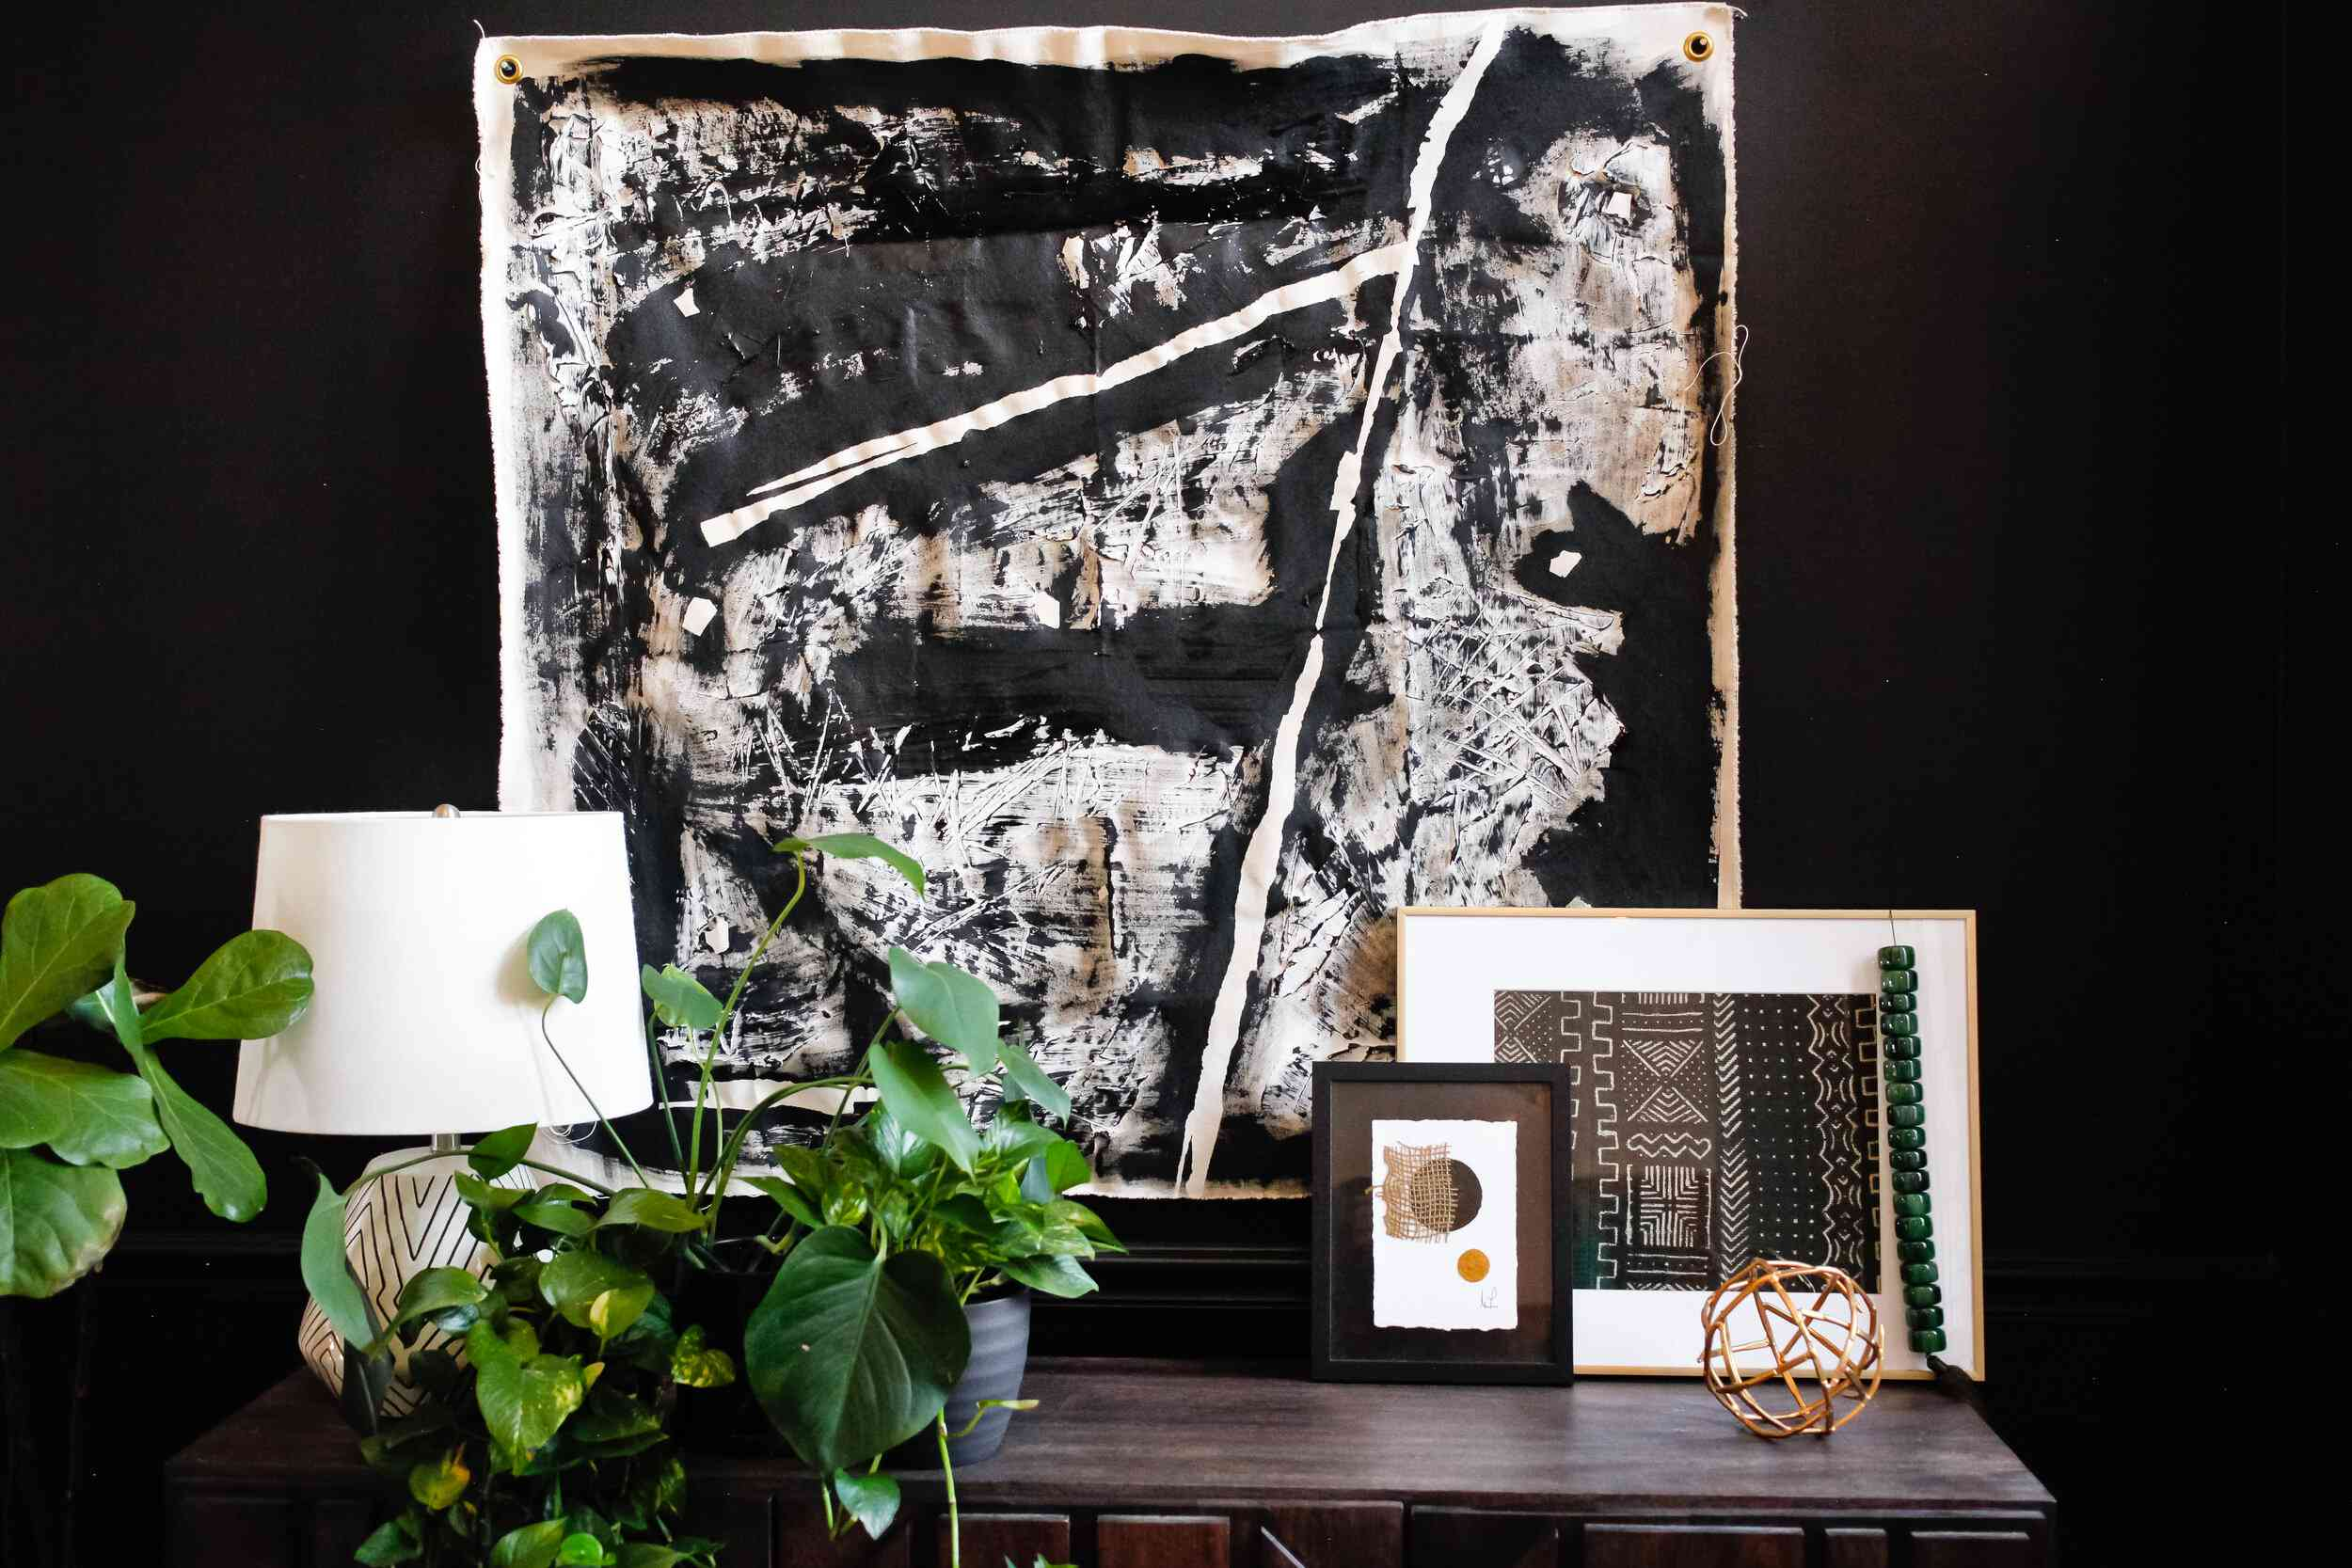 Black and white art display with black wall